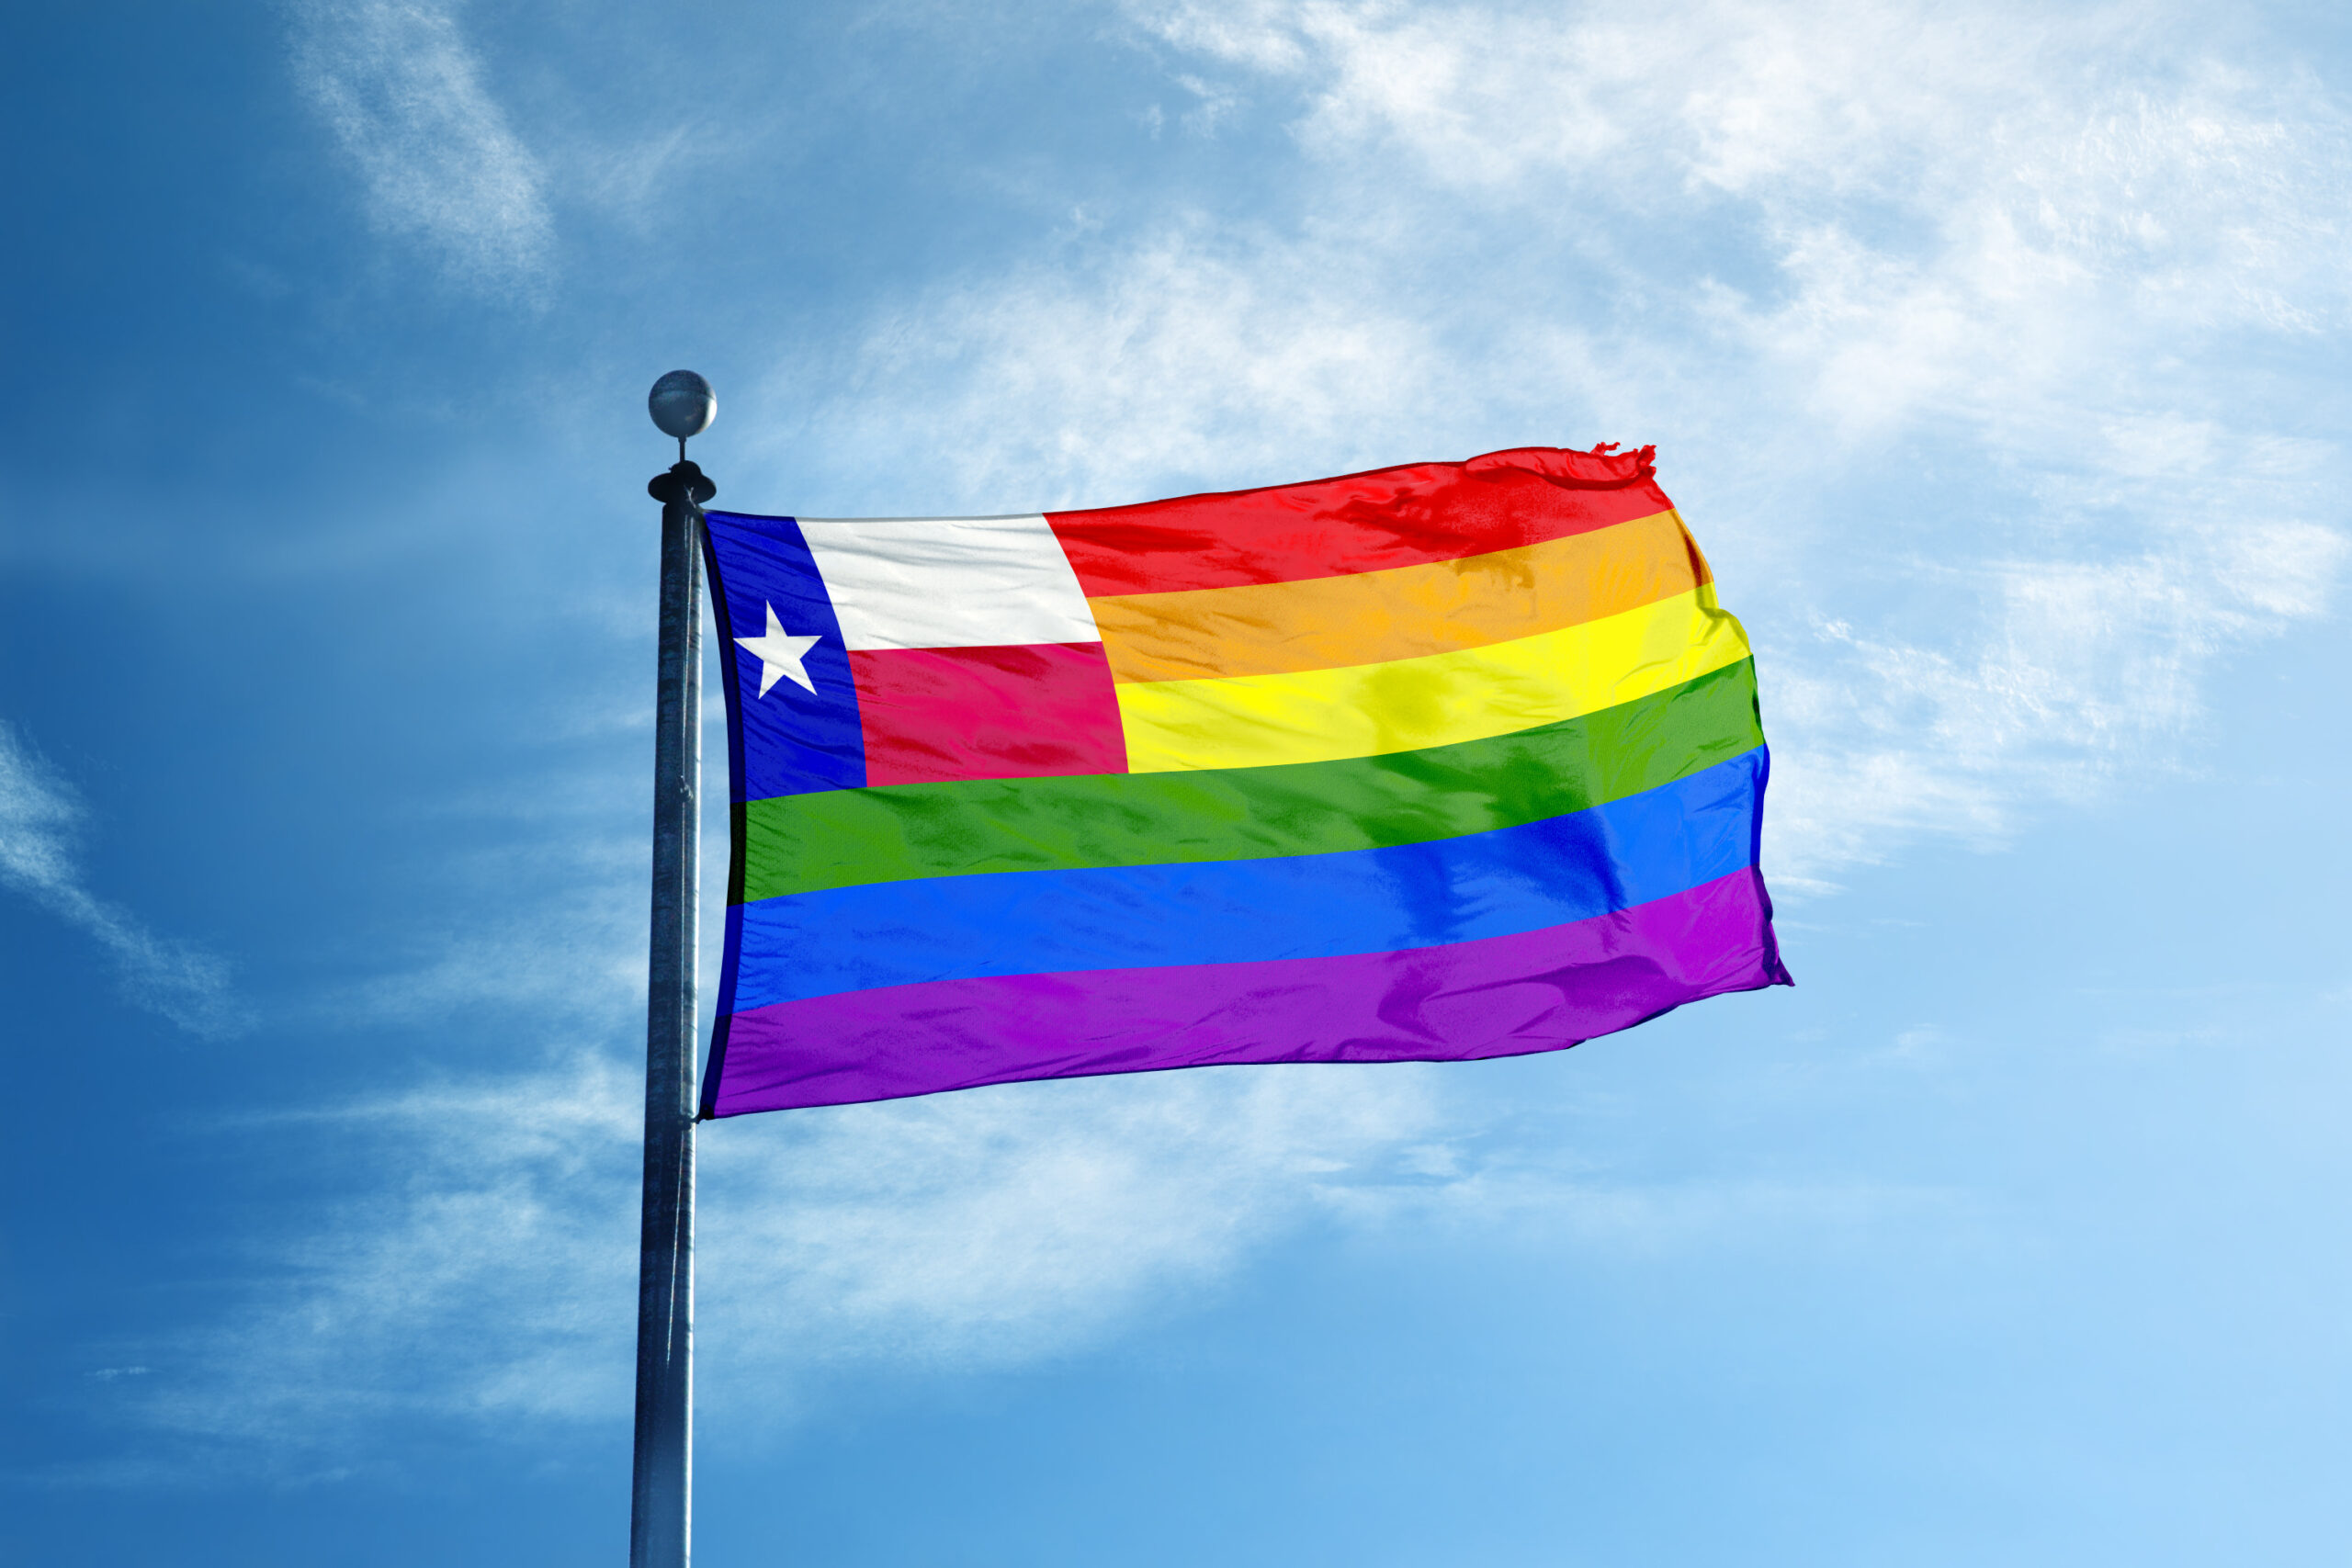 A Texas Pride flag and a clear blue sky.